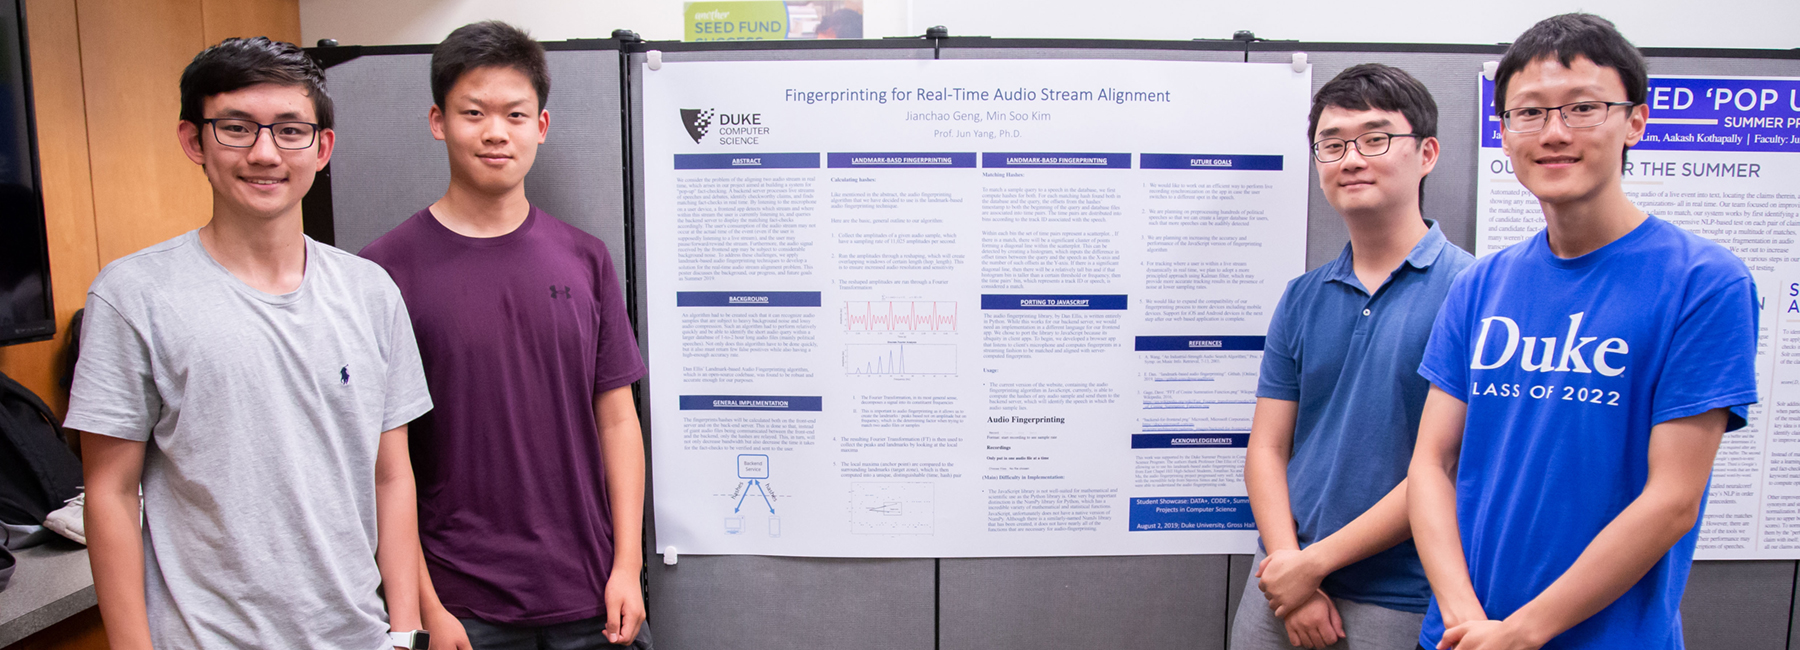 Ugrad Summer 2019 Research-Fingerprinting Project Poster-Student Team